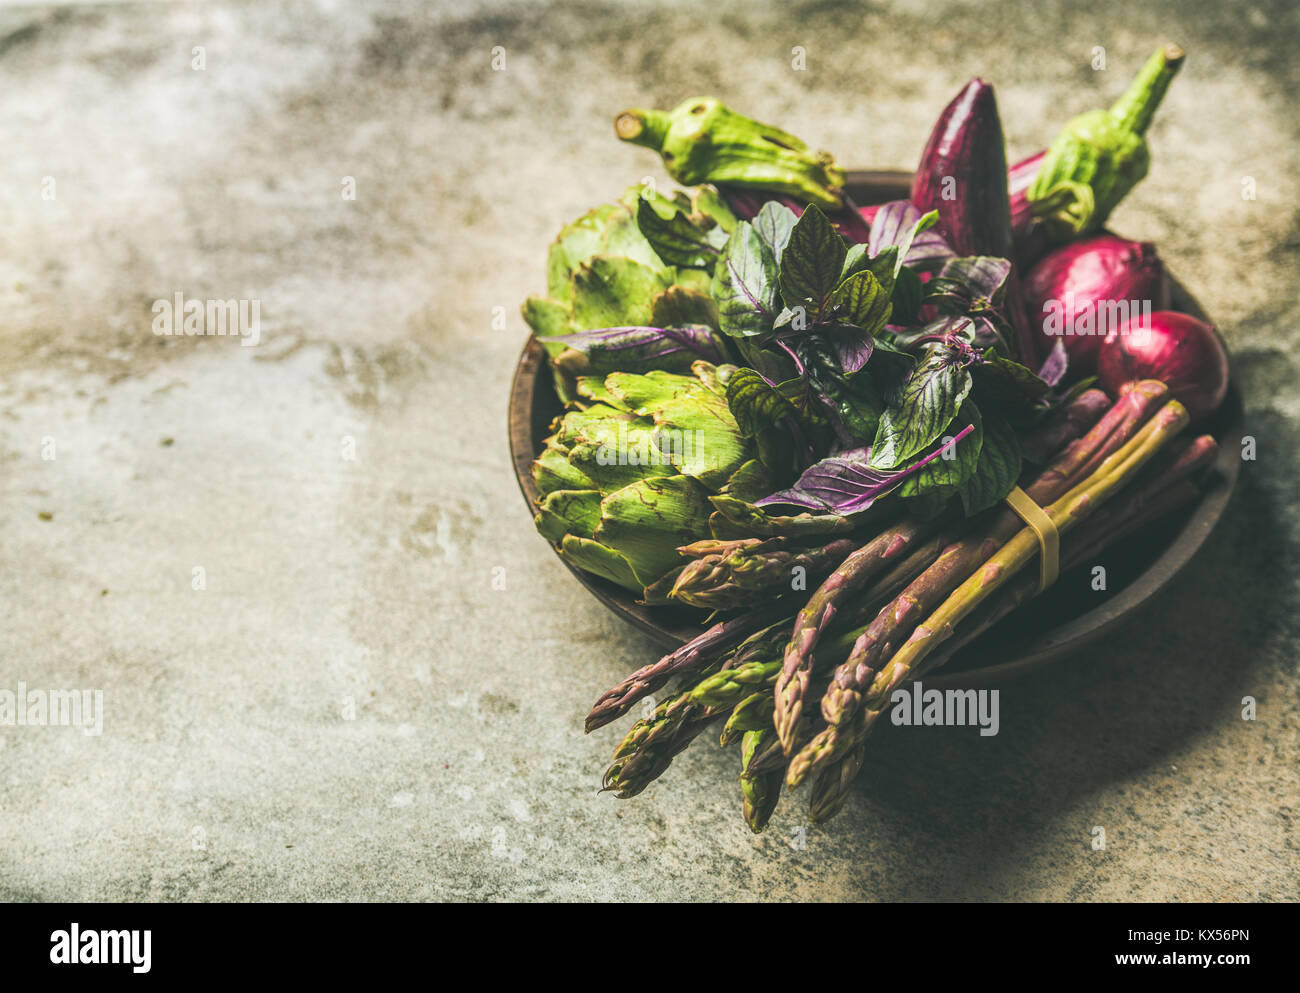 Flat-lay of green and purple vegetables on plate, concrete background Stock Photo